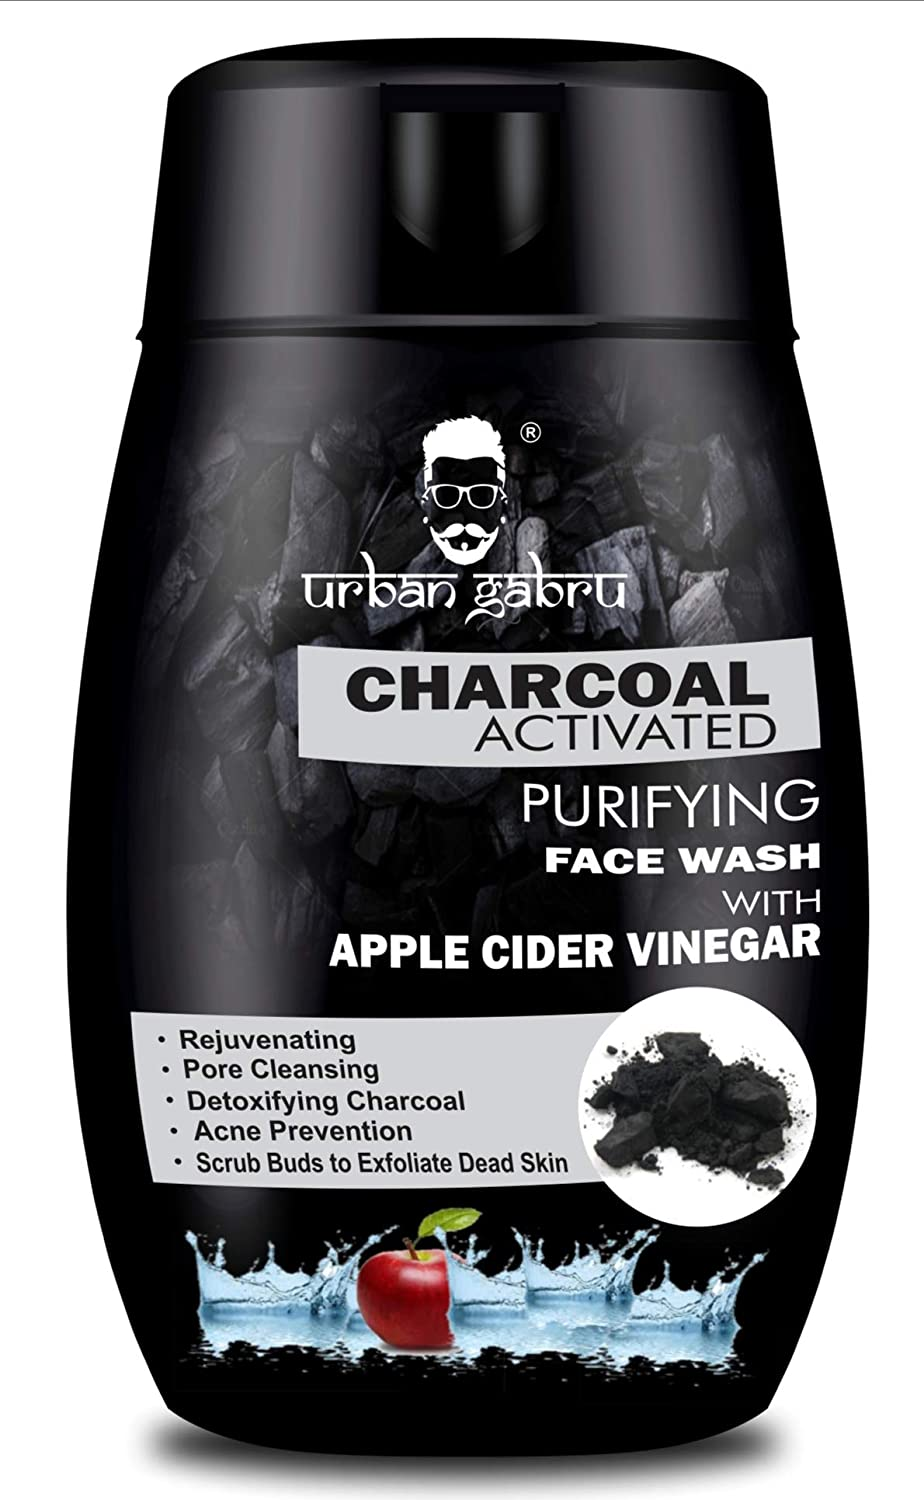 UrbanGabru Charcoal Face Wash with Apple Cider Vinegar for Pimple/Acne control and clear Glowing Skin